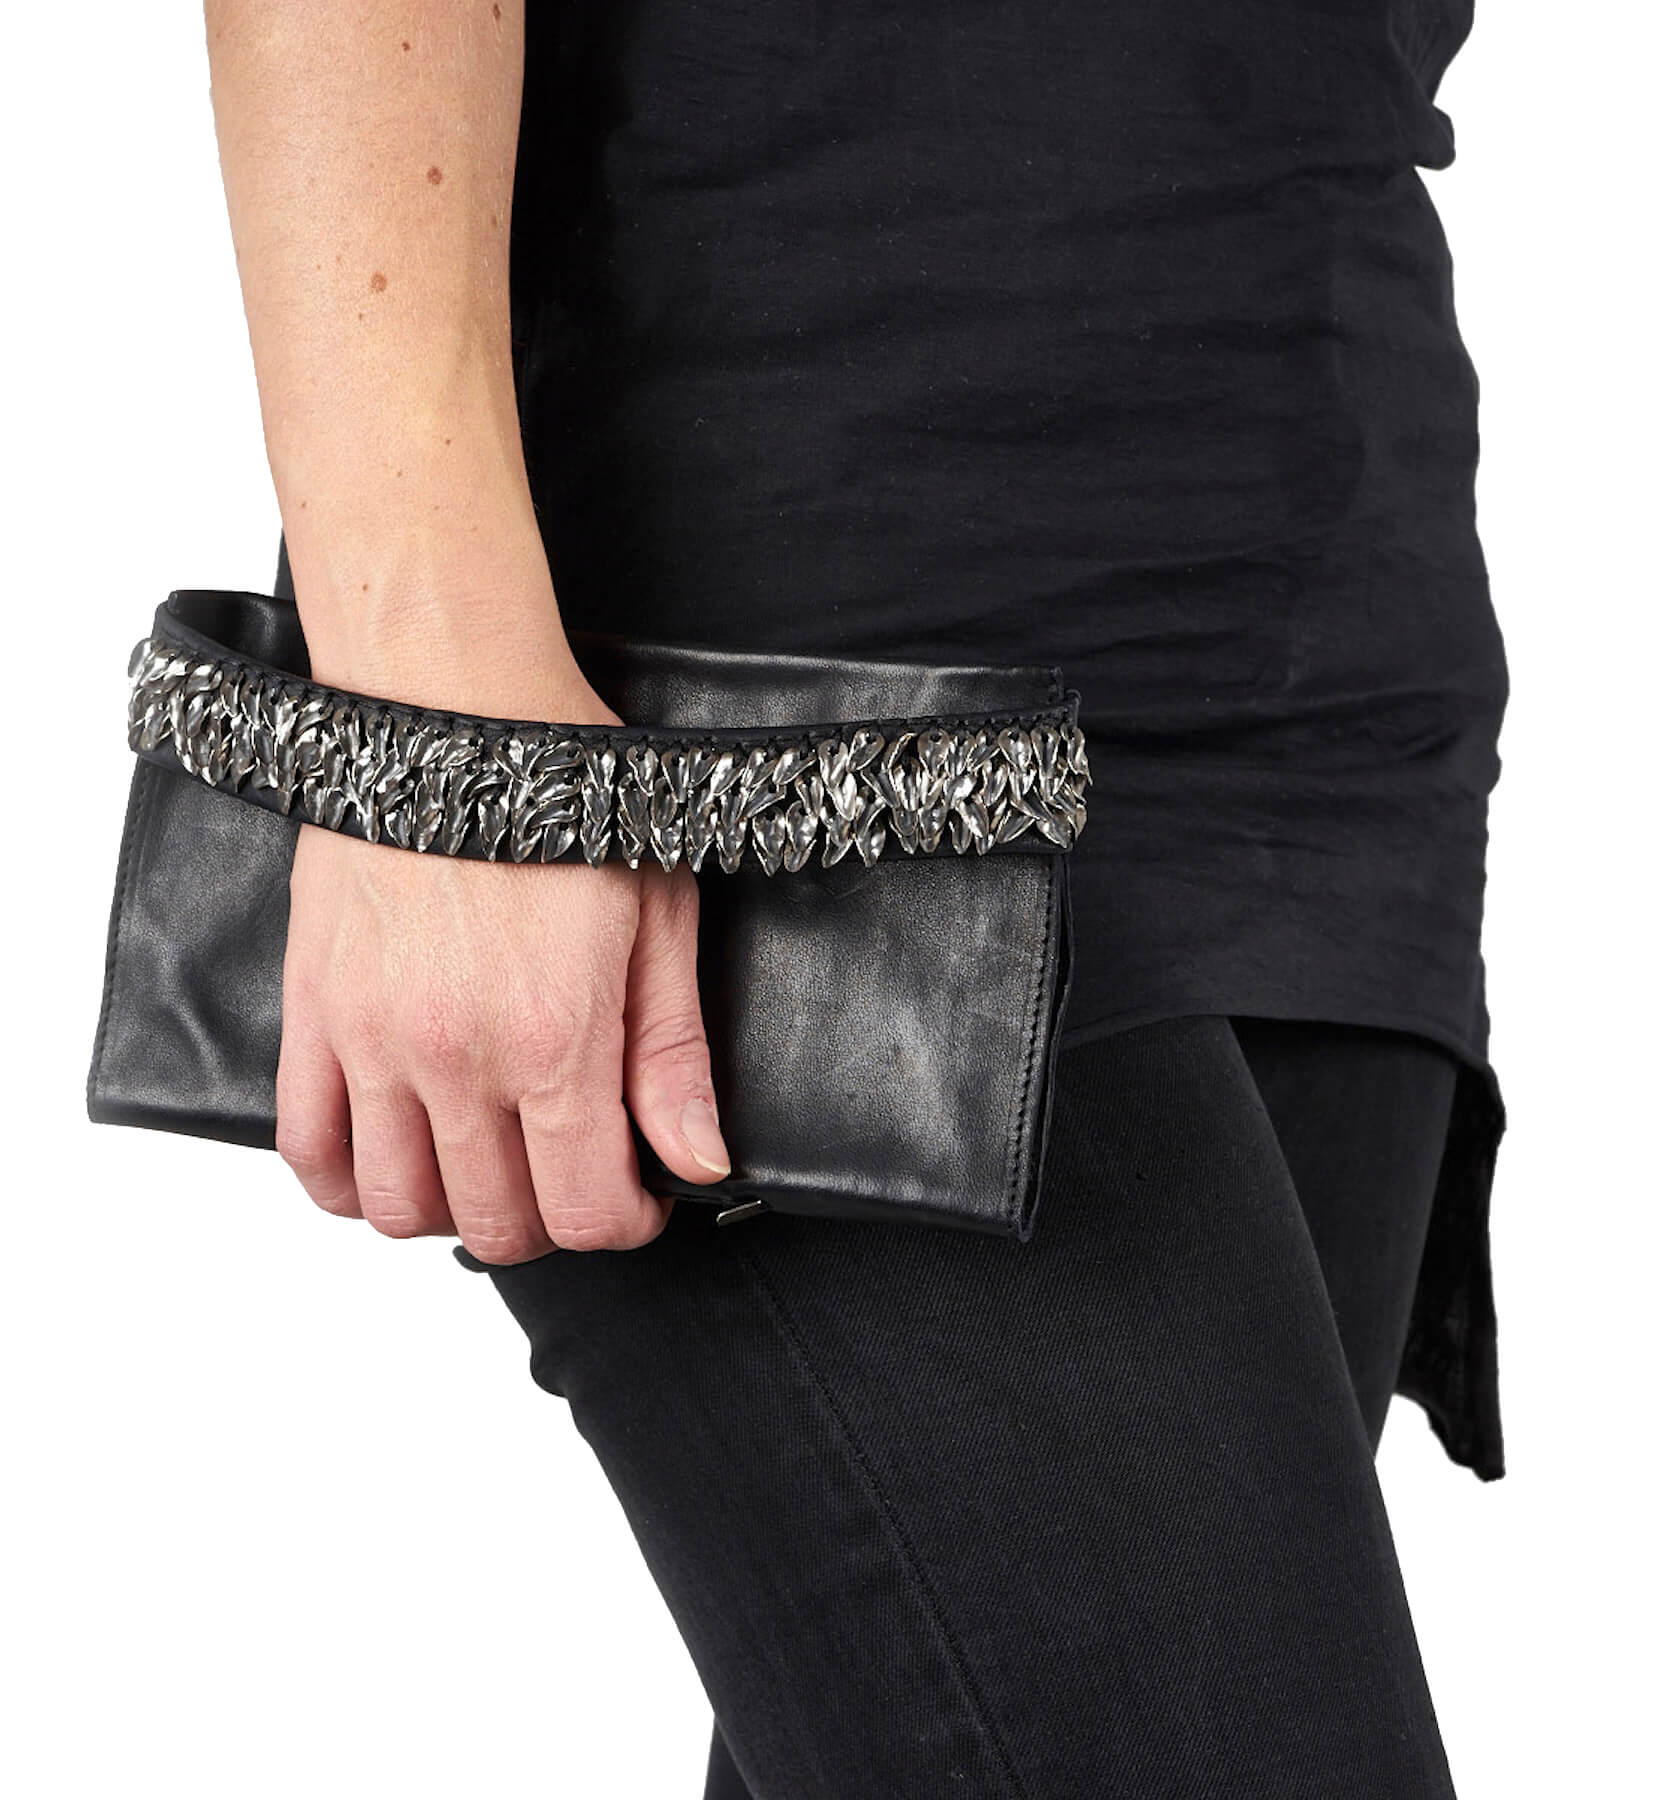 daniele basta leather and silver wallet - arido foglie wearing